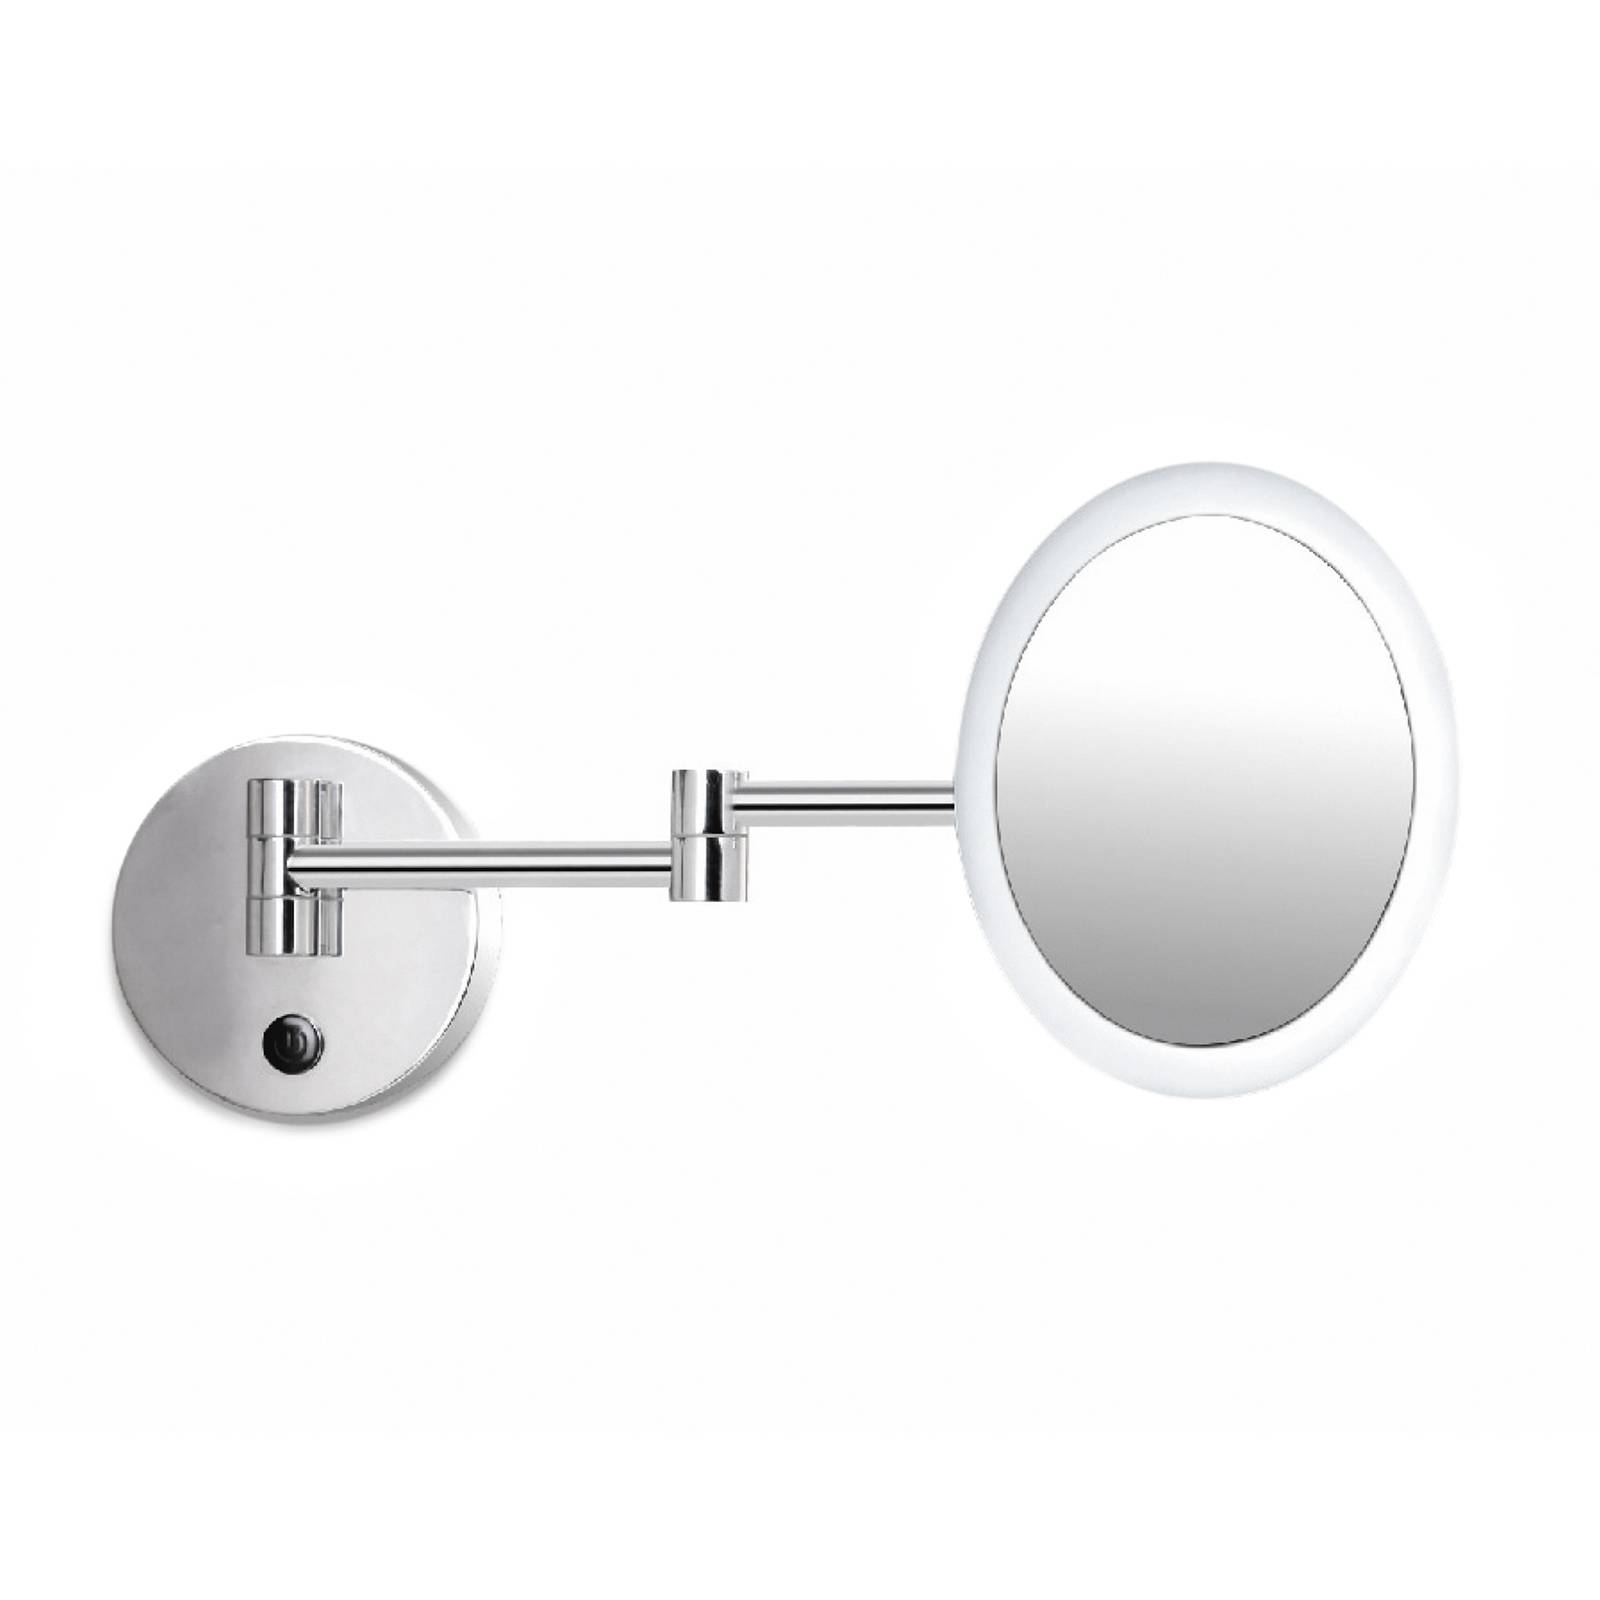 Rim LED make-up mirror in chrome with joints